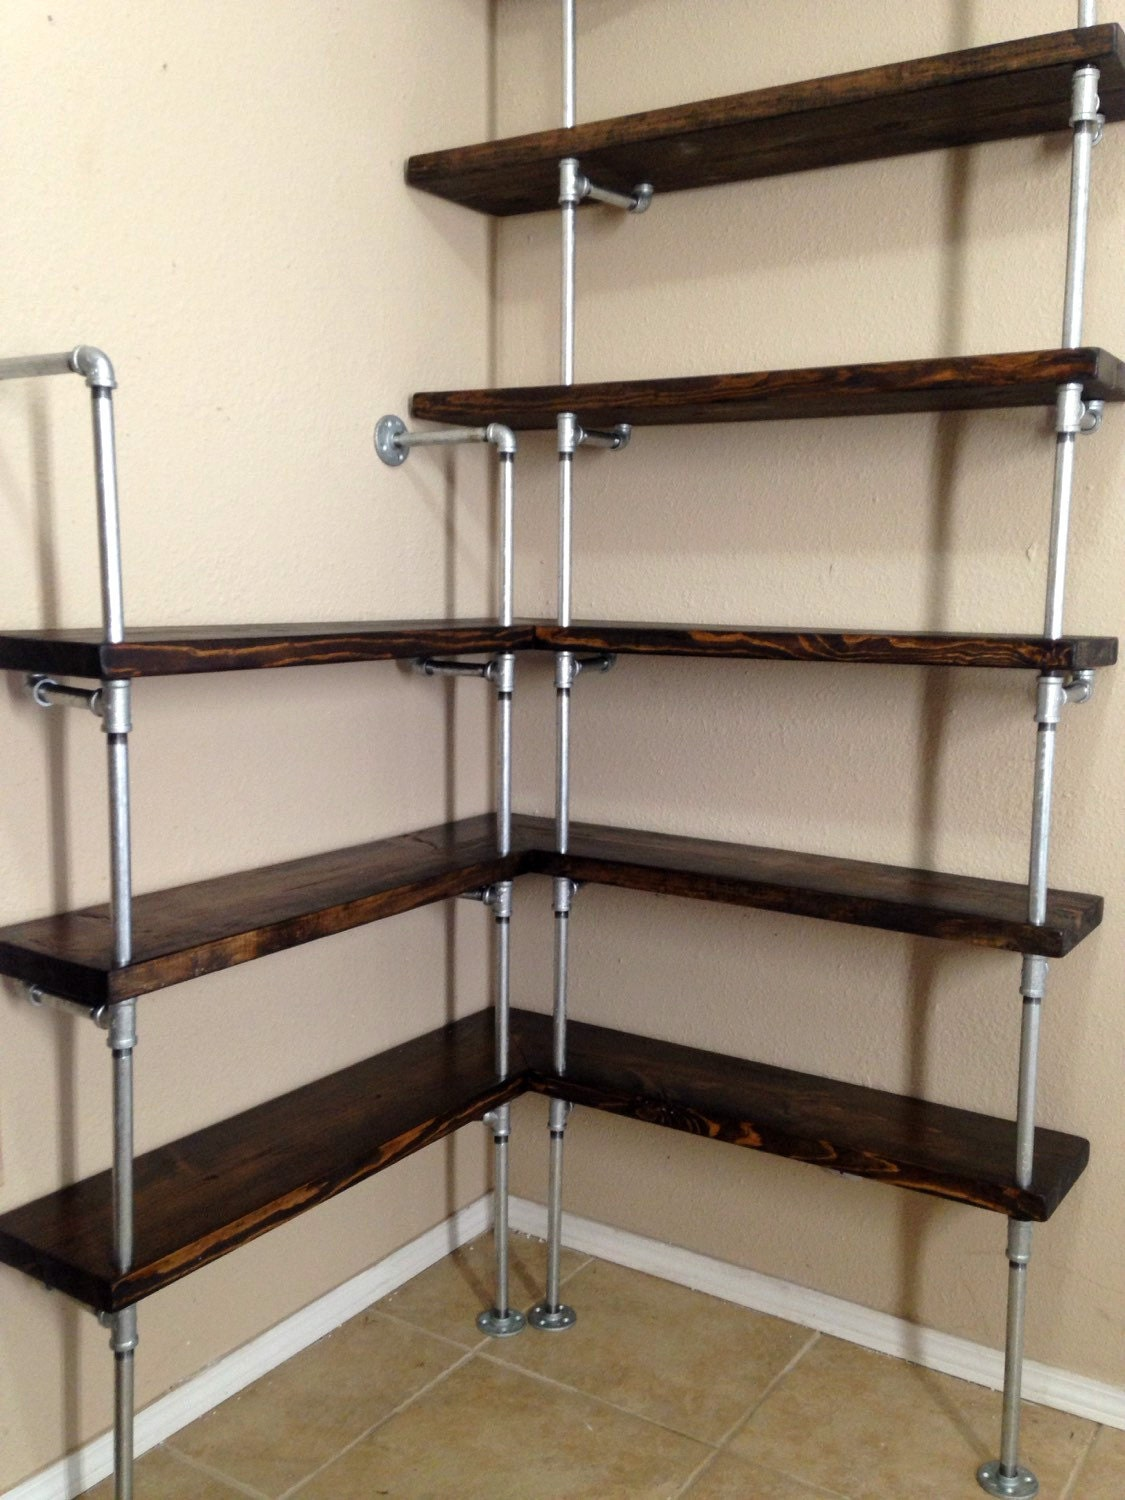 Shelving For Kitchen Corner Shelving Unit Corner Shelf Pipe Shelving